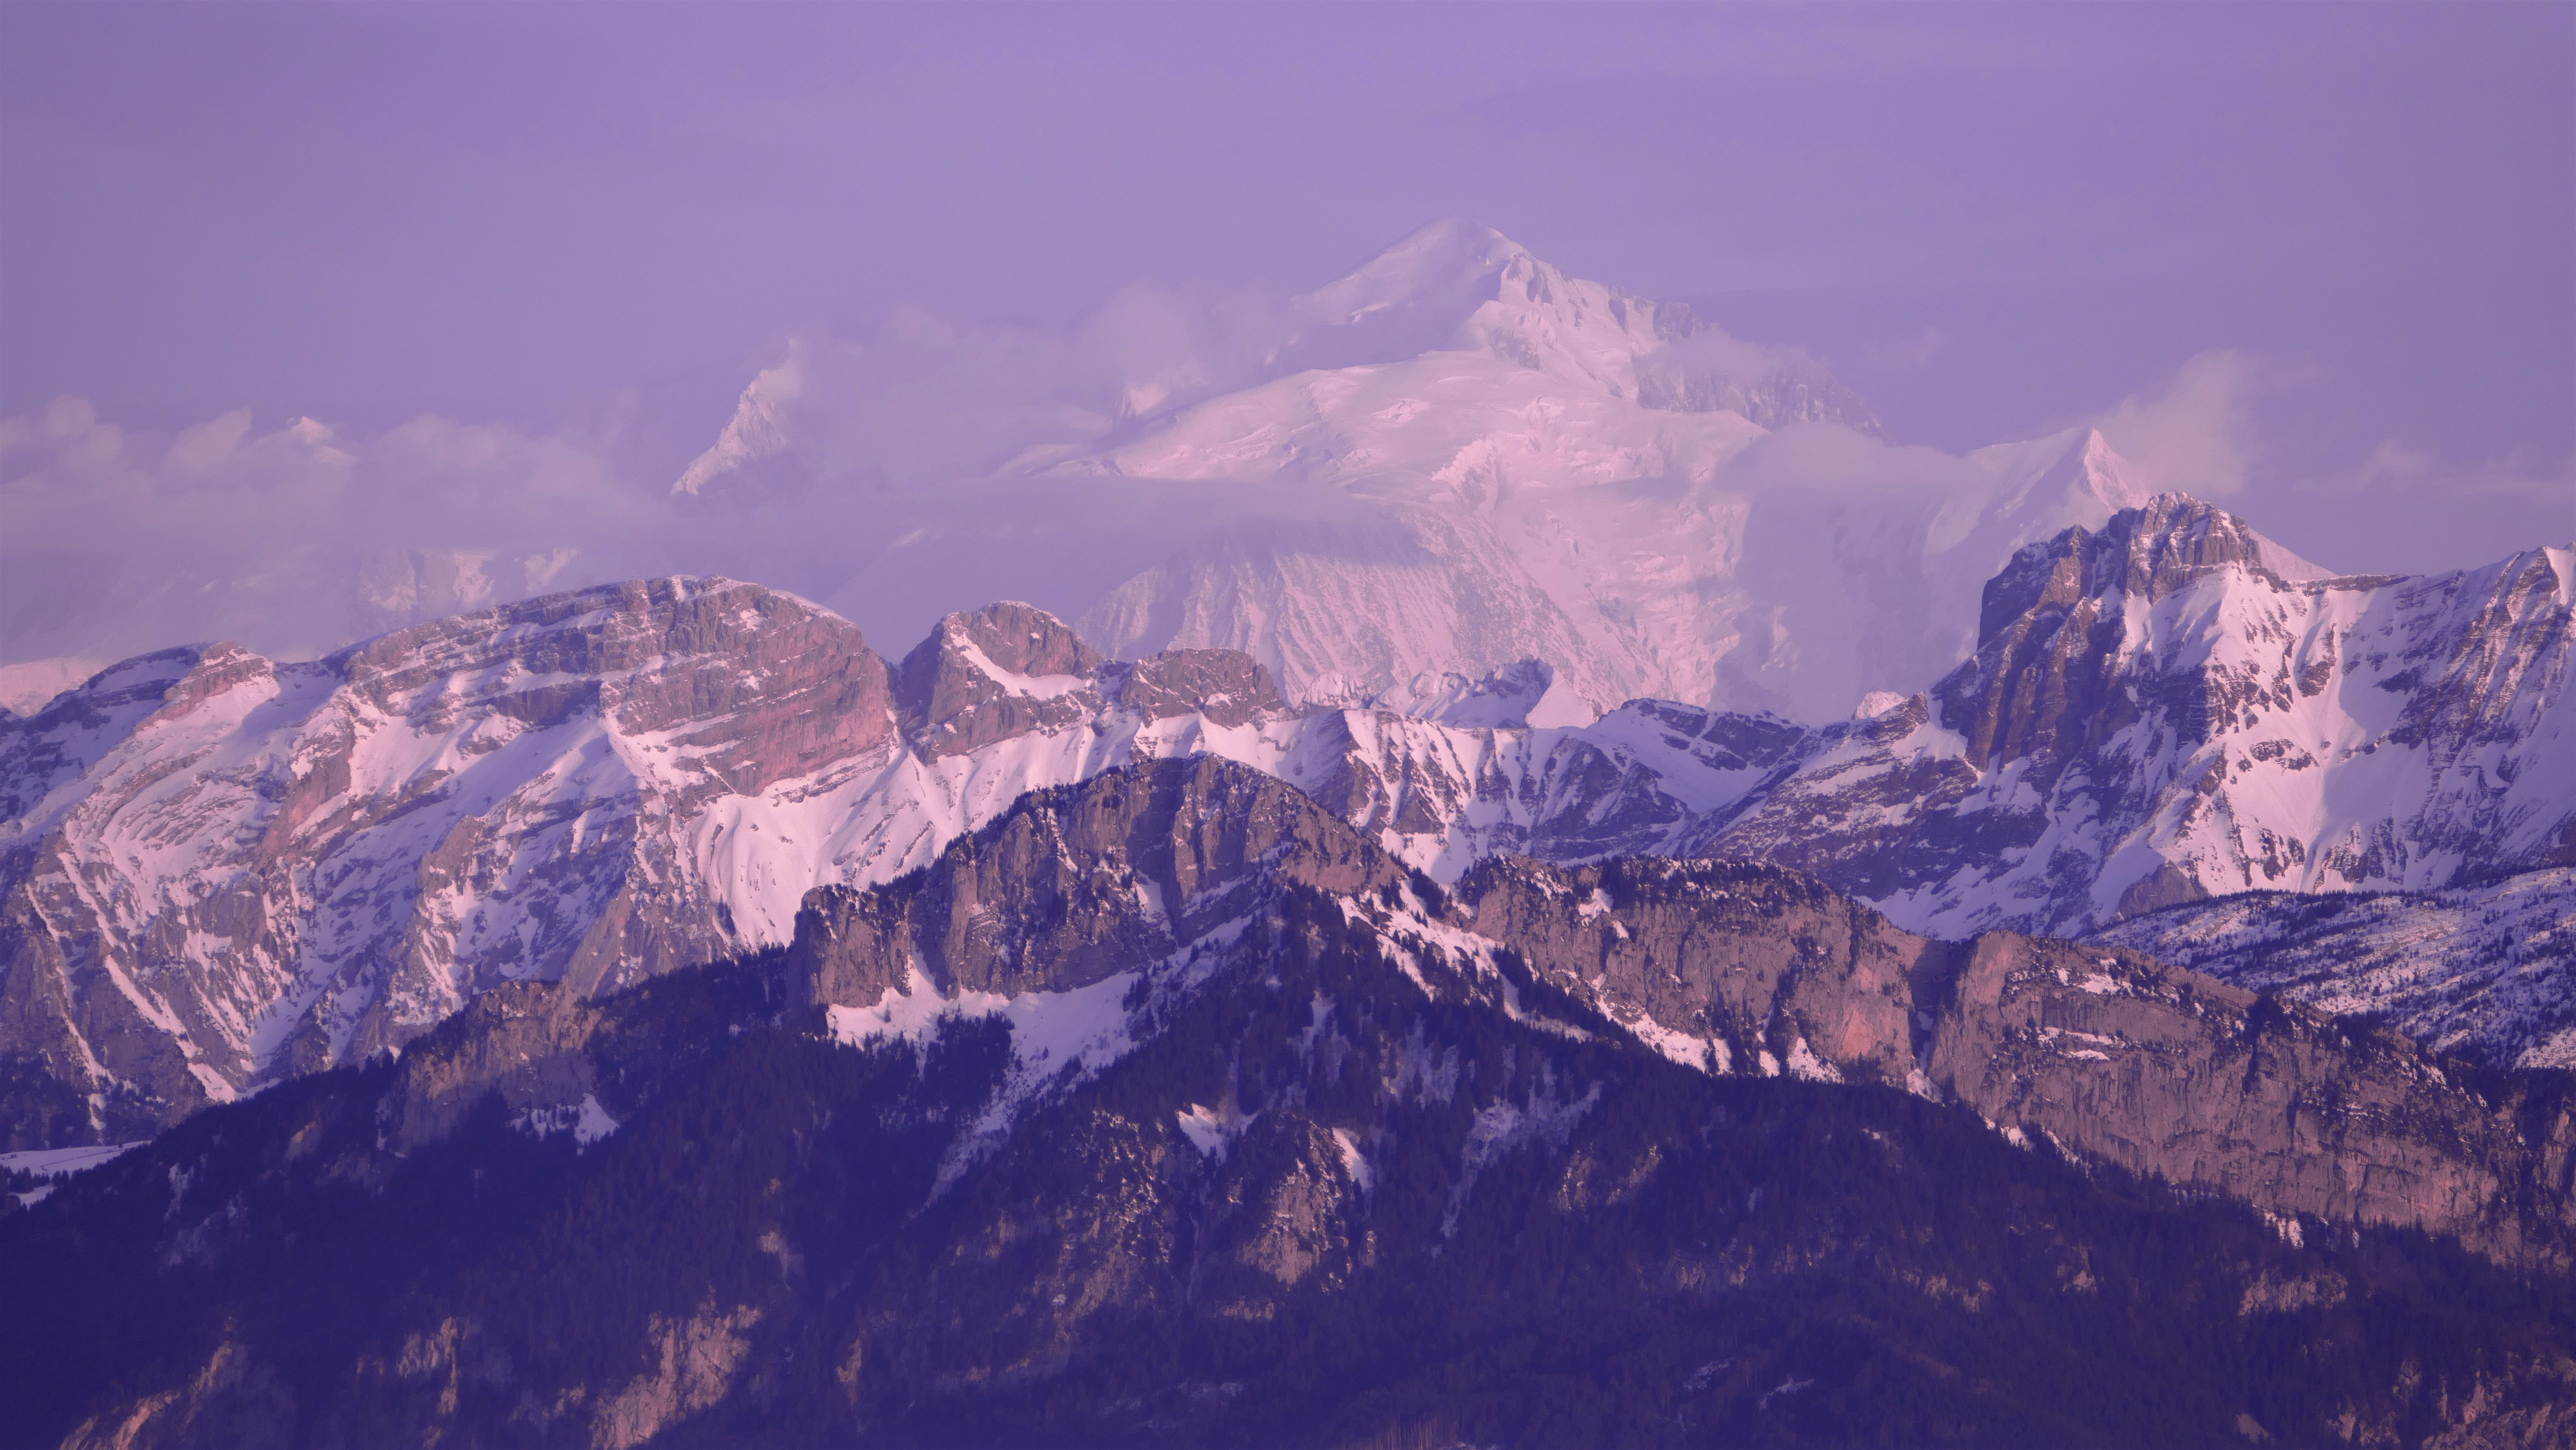 A purple-hued shot of the mighty Mont Blanc towering over granite ridges